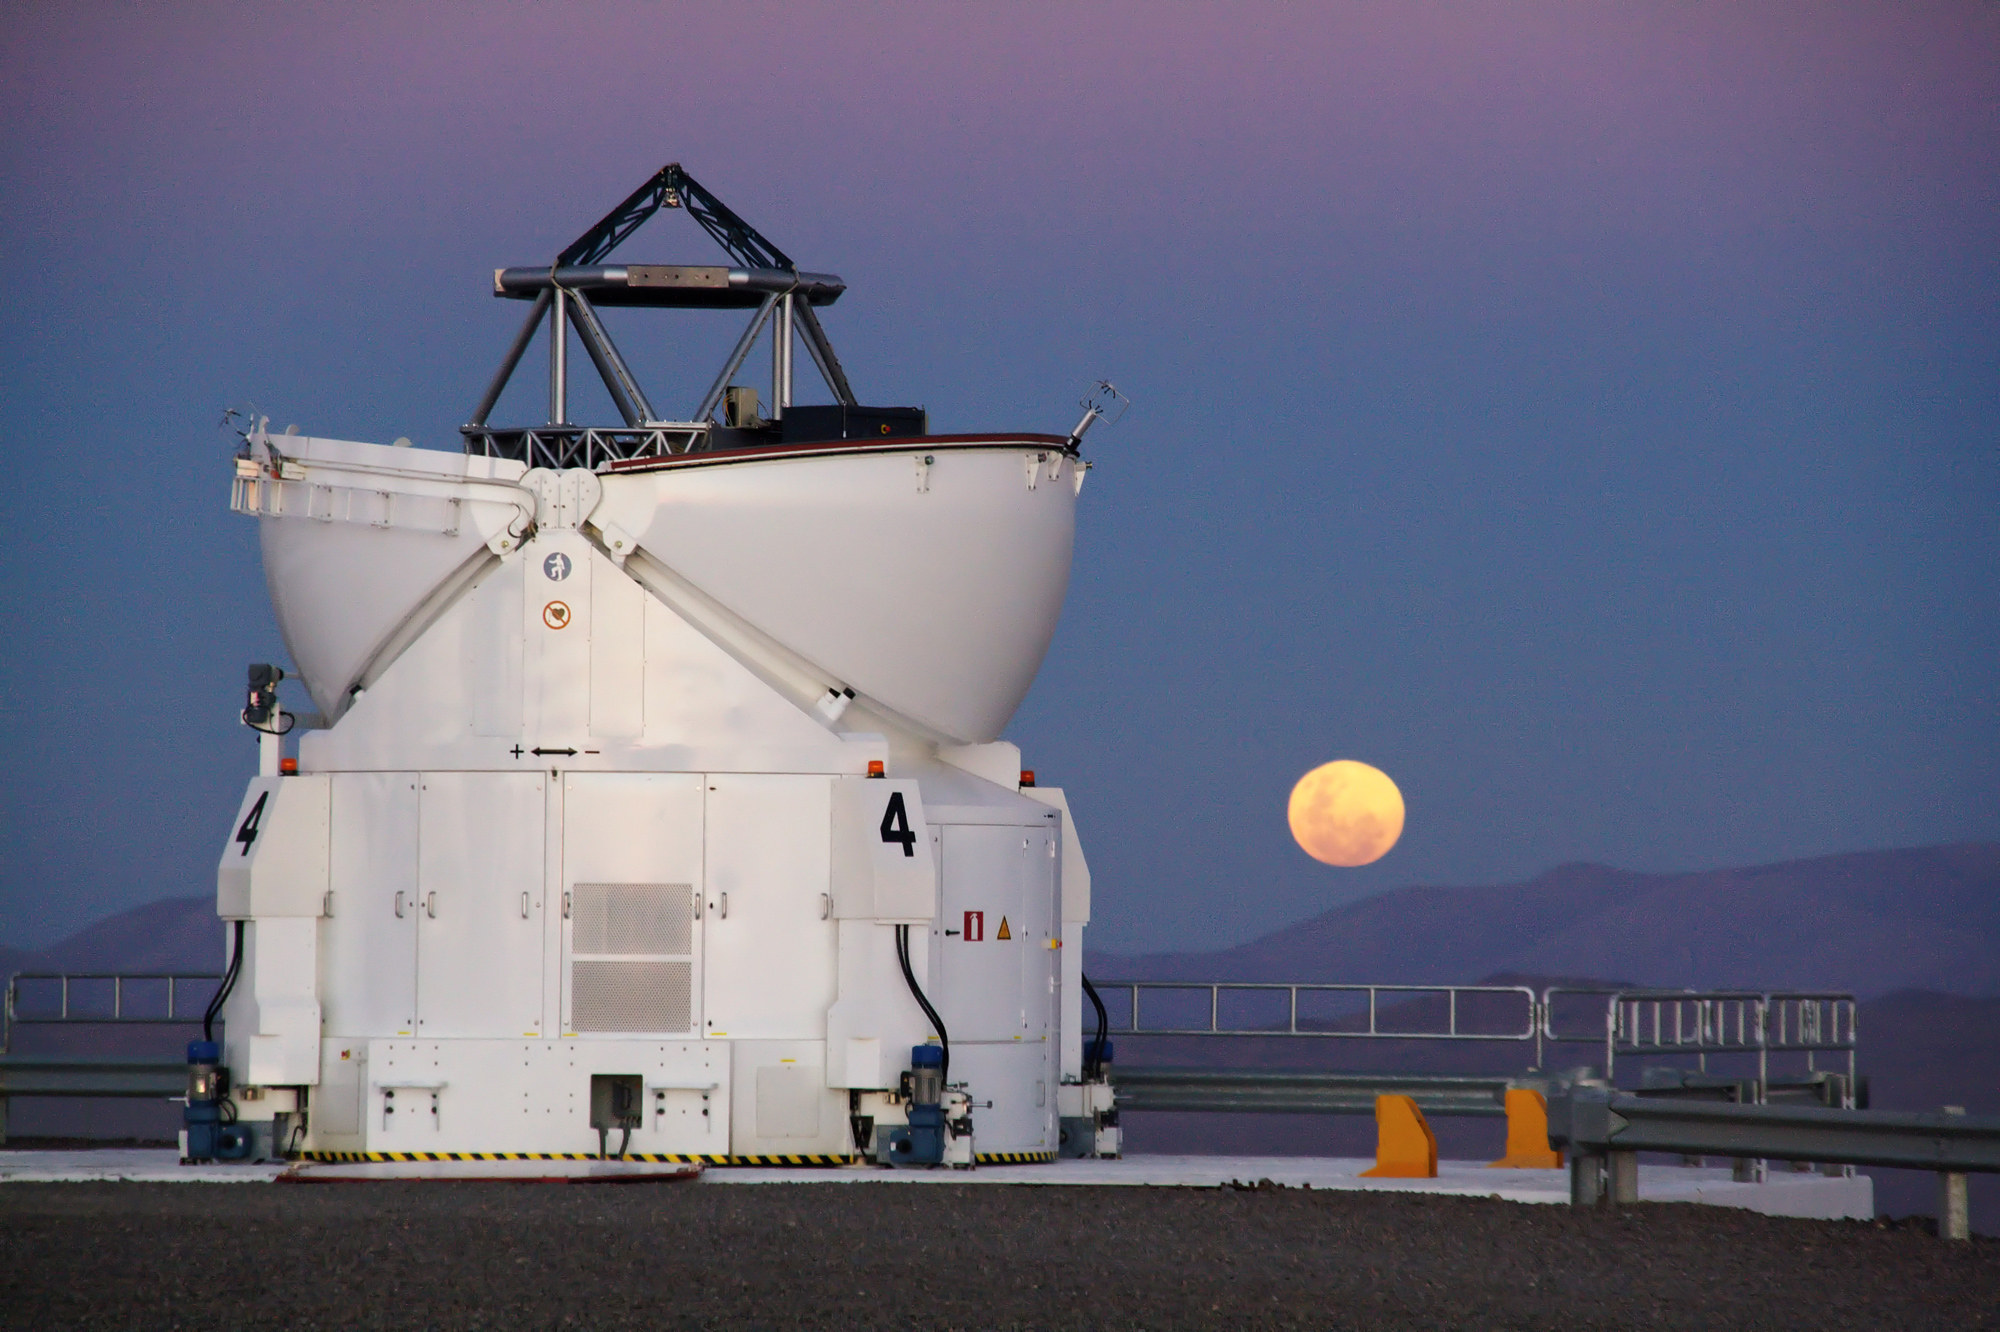 Red Harvest Moon over Paranal, Chile